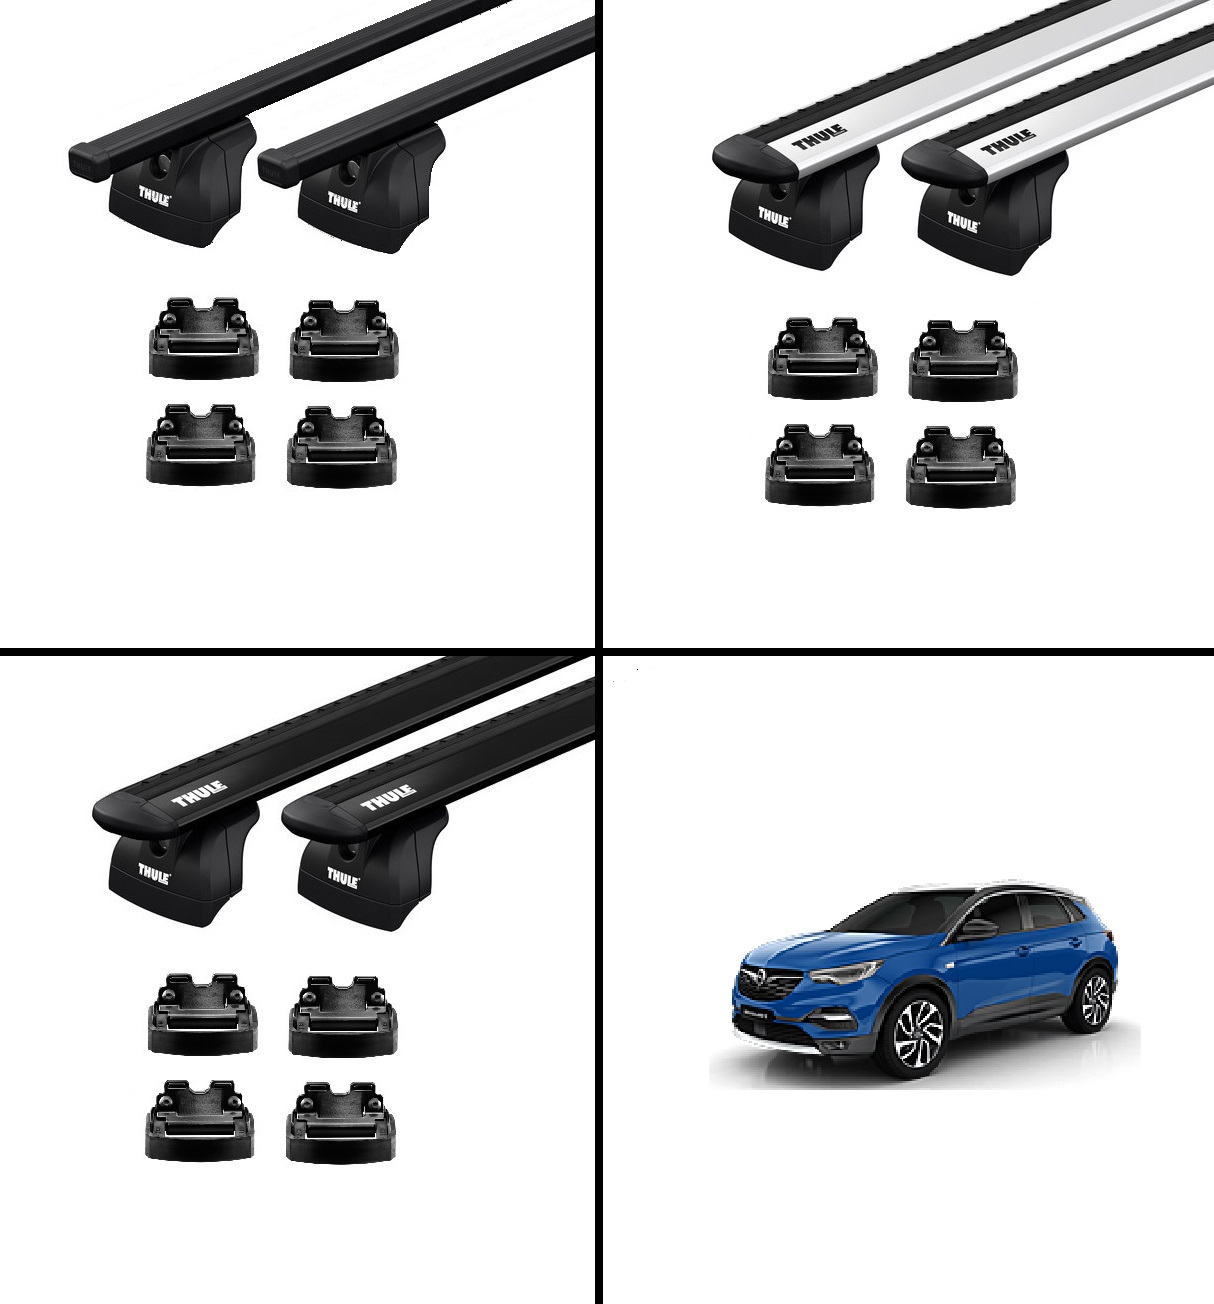 thule dachtr ger opel grandland x mit reling ab 2017 dioma. Black Bedroom Furniture Sets. Home Design Ideas